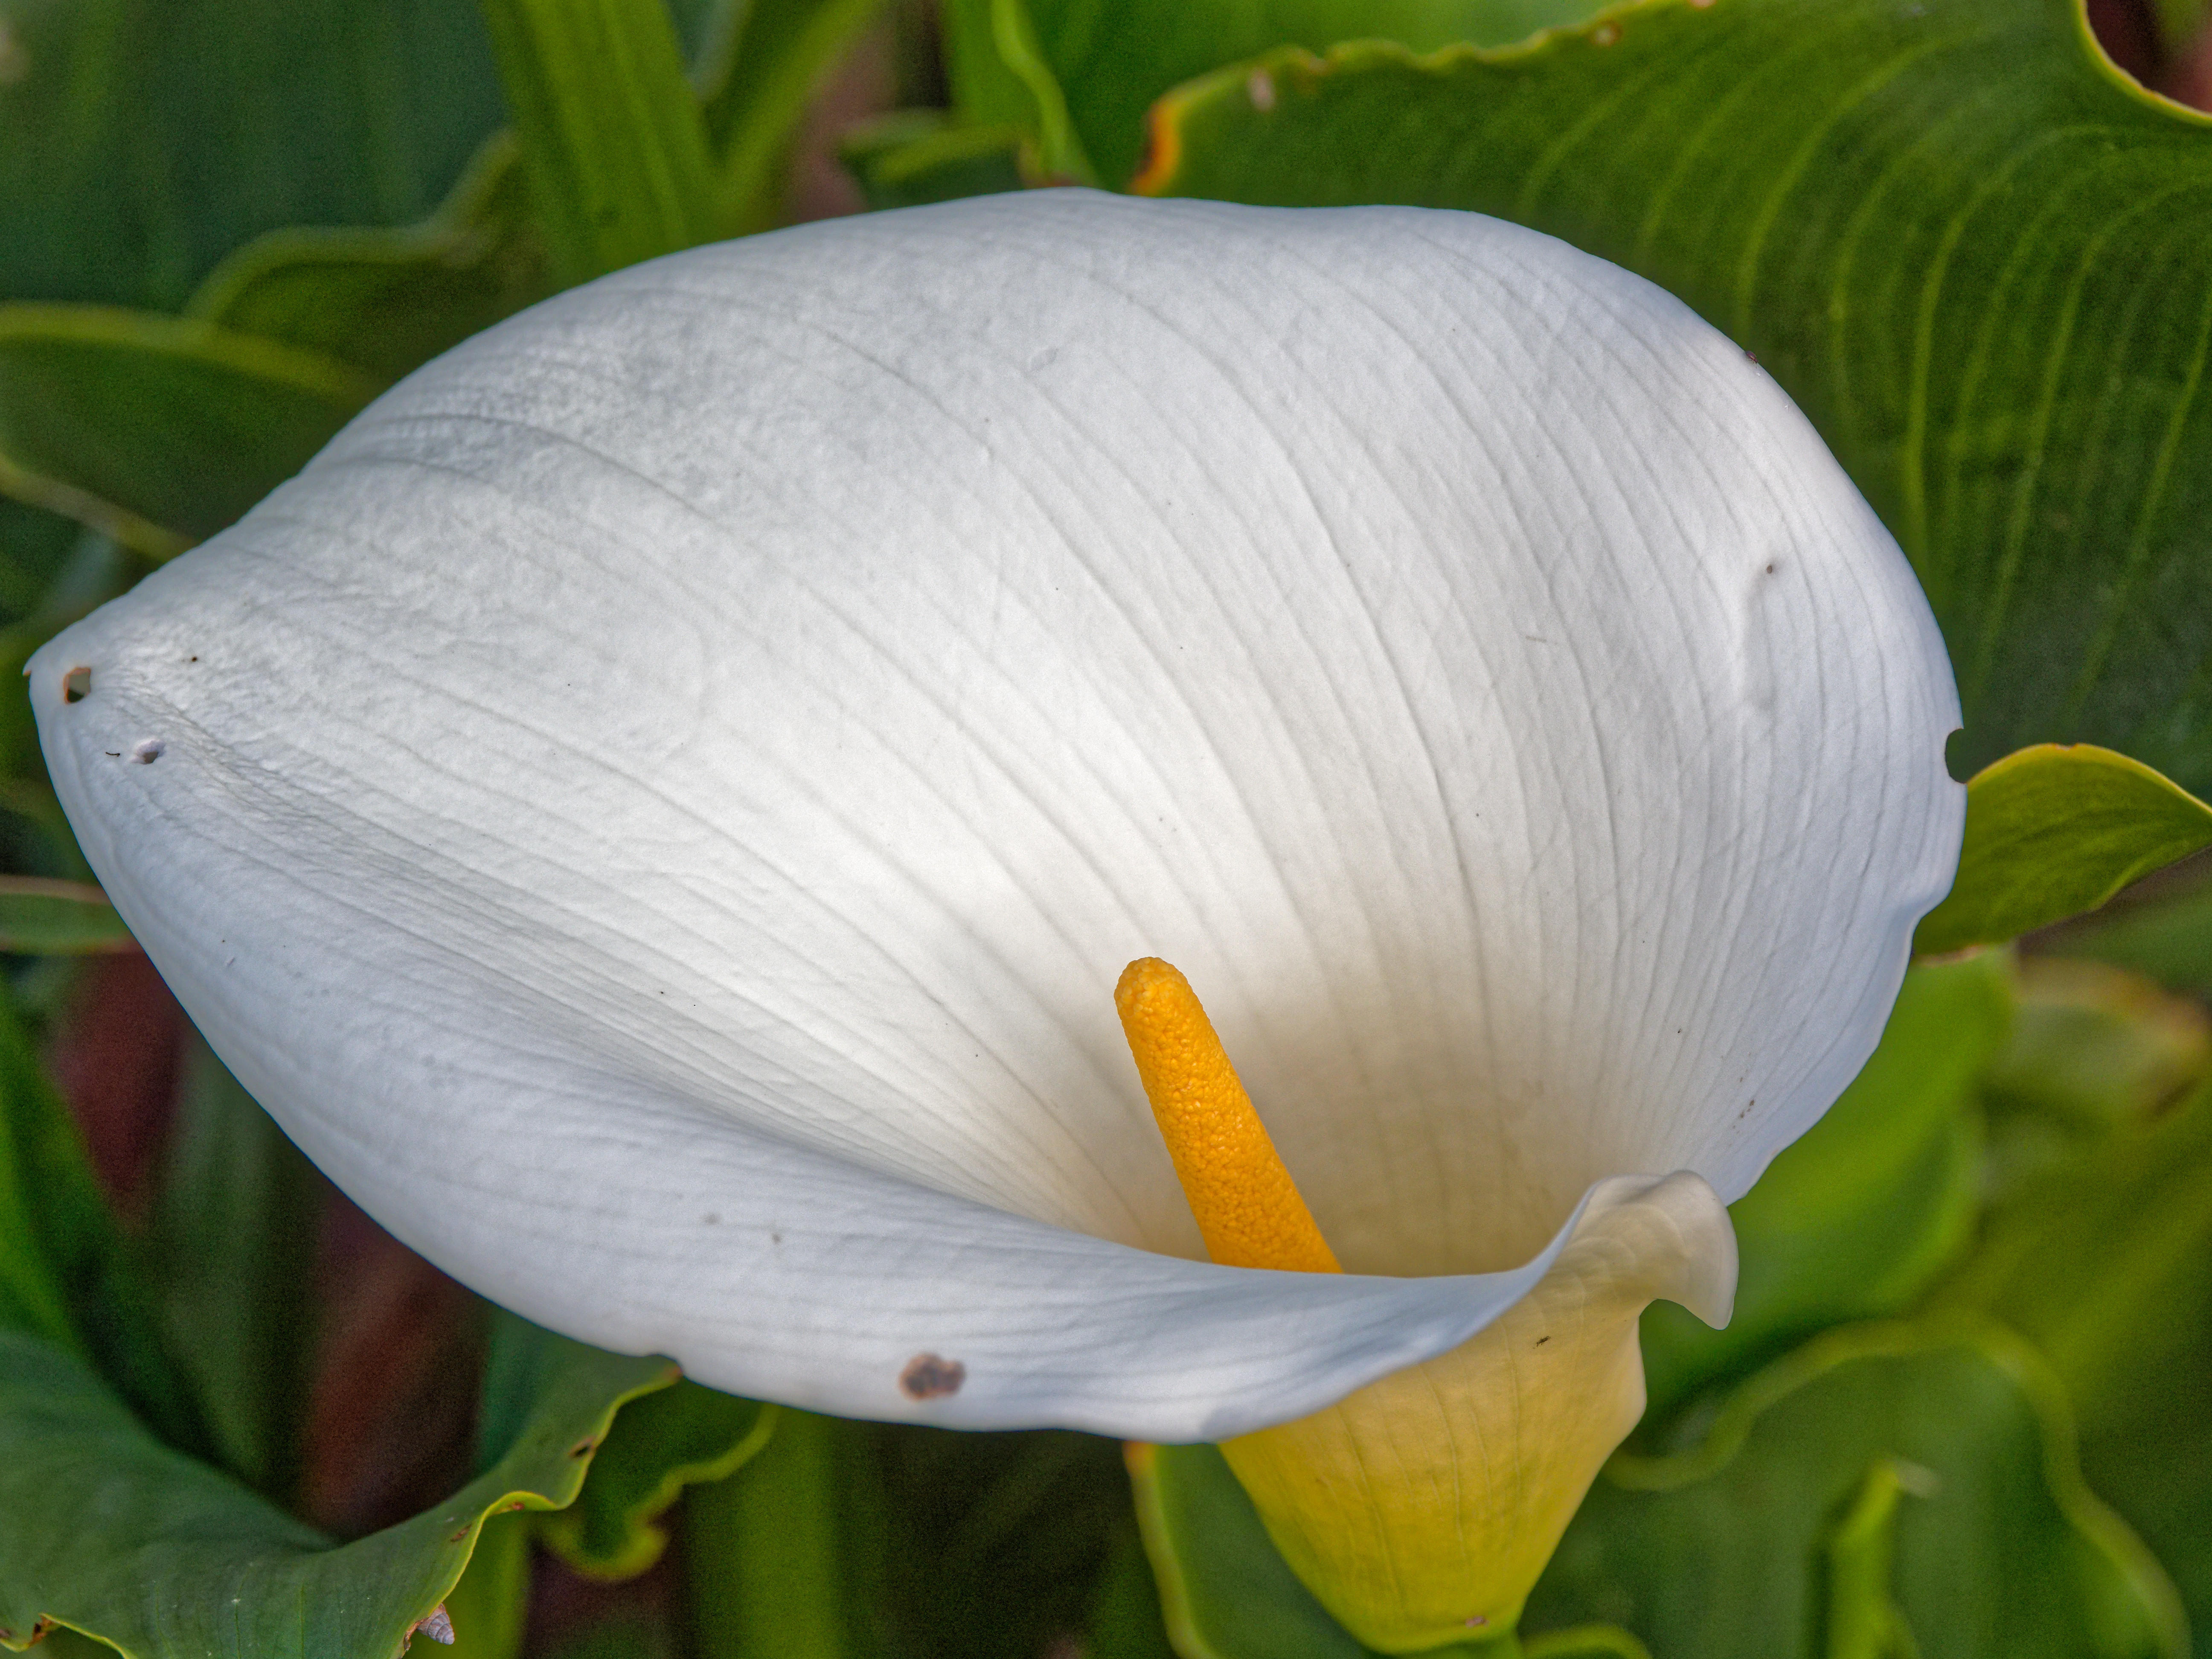 This should be Arum.jpeg.  Is it missing?